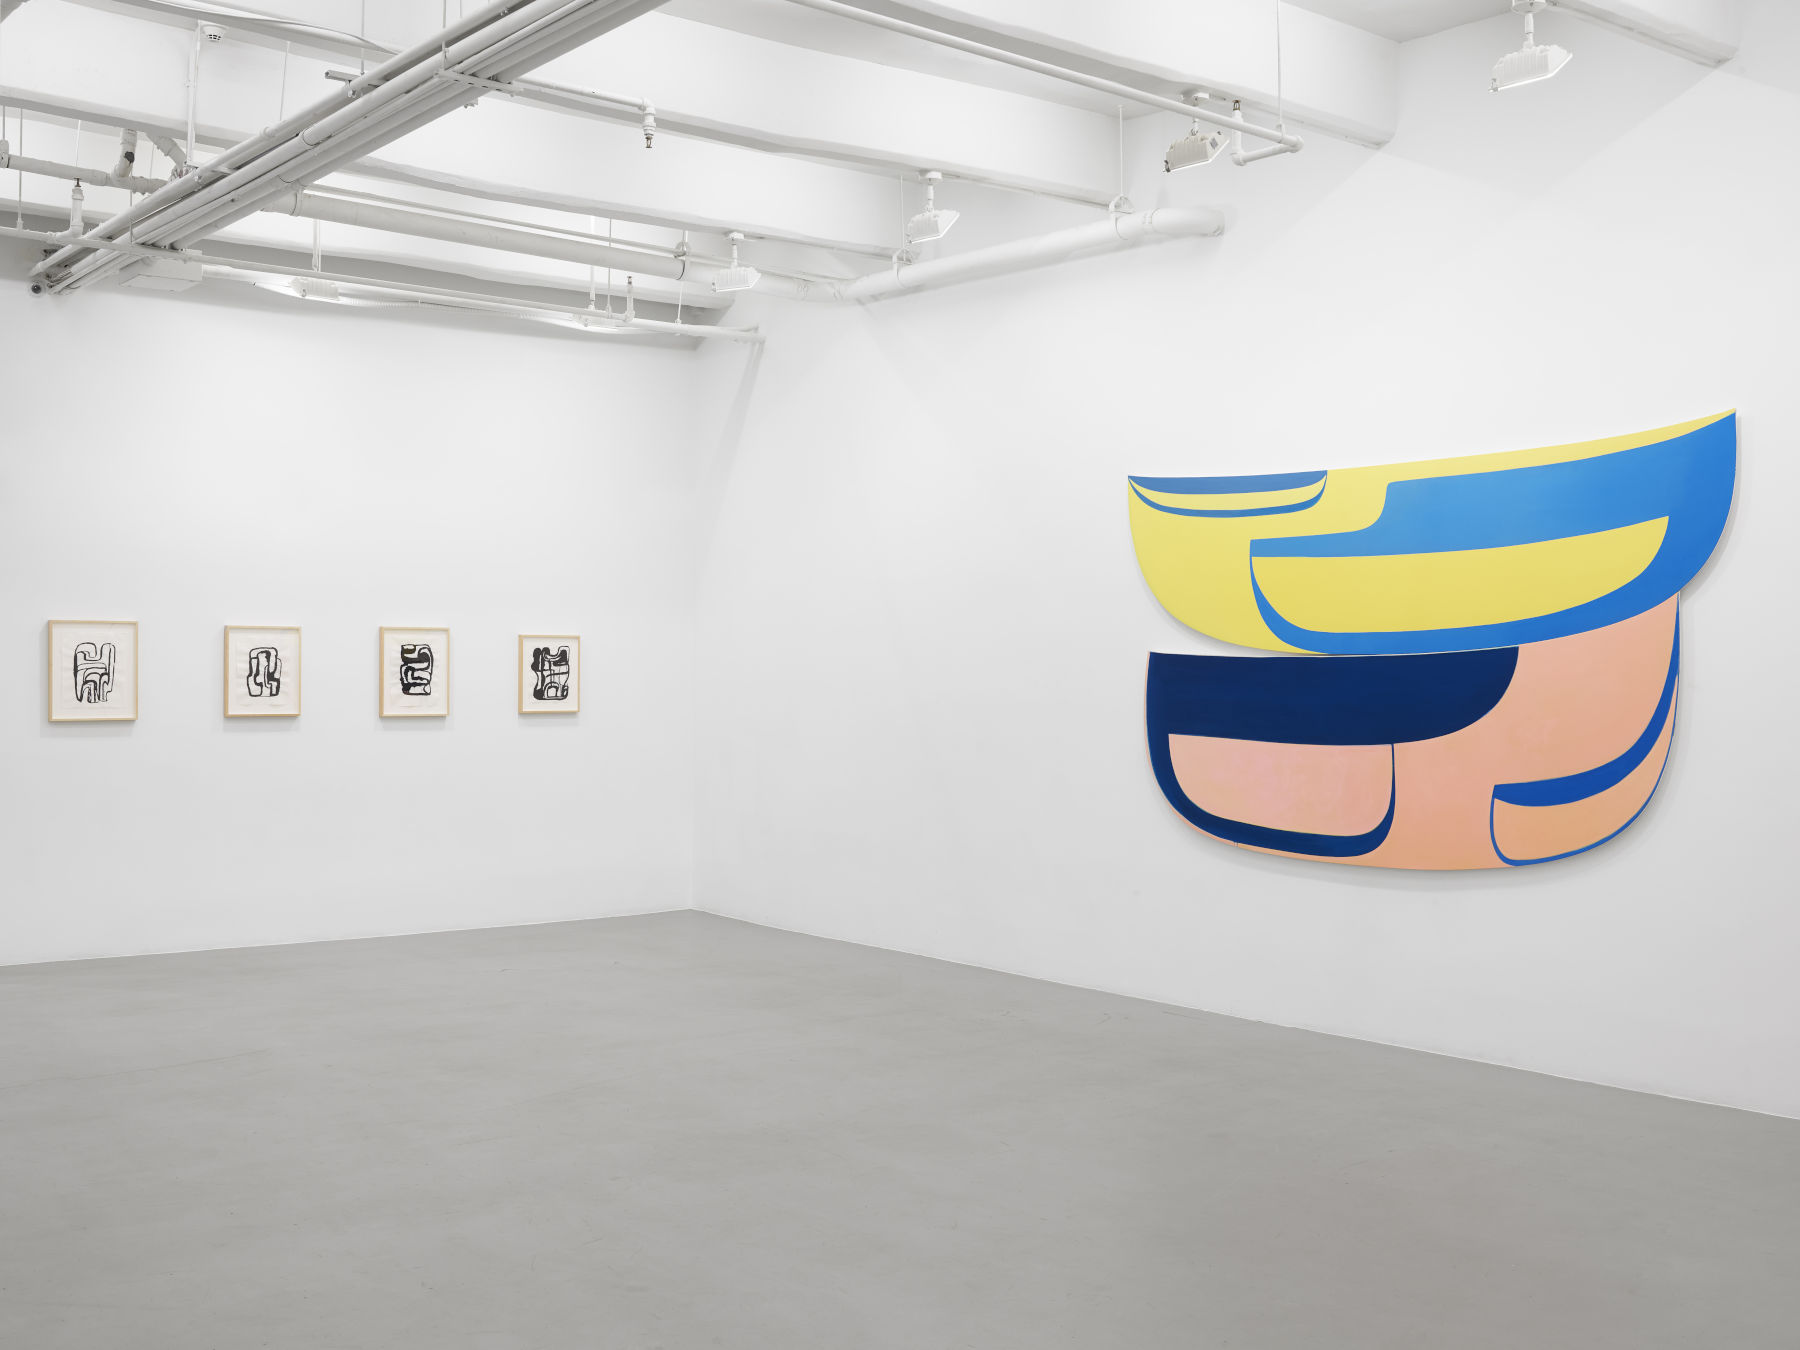 Lisson Gallery 10th Ave Joanna Pousette-Dart 1